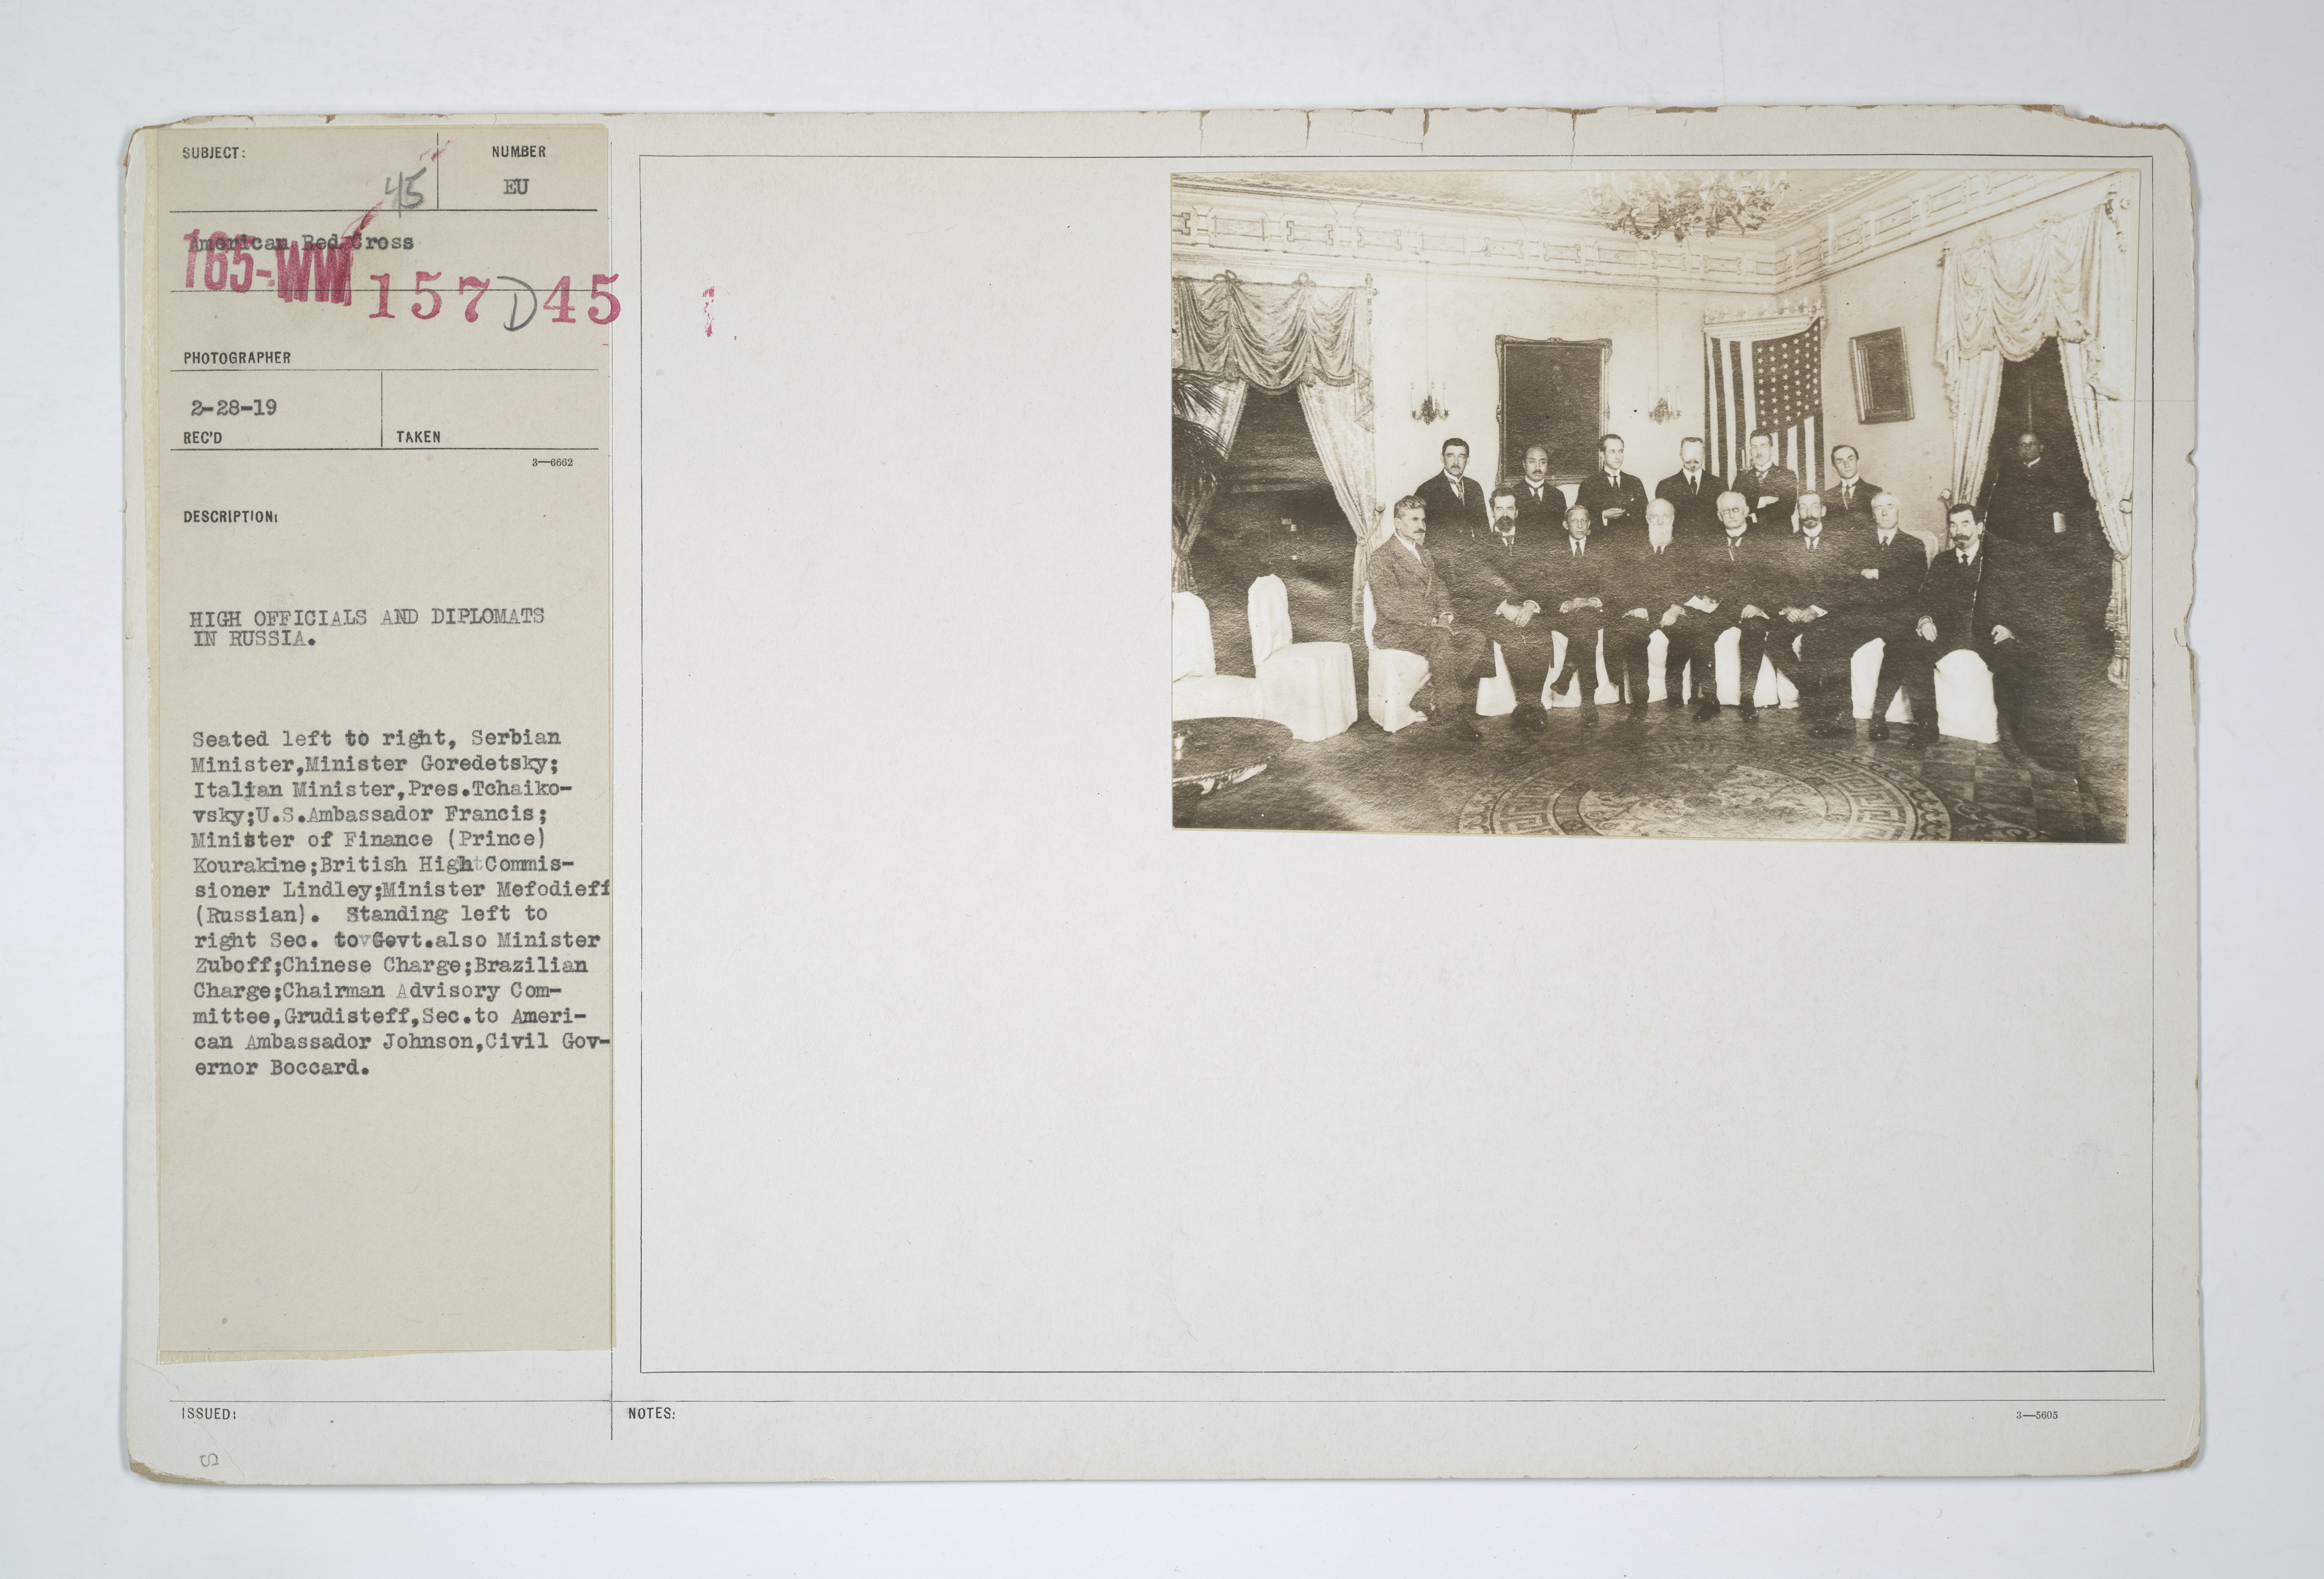 Enemy Activities - Arrests of Alien Enemies - Bolsheviks in Russia - High officials and diplomats in Russia